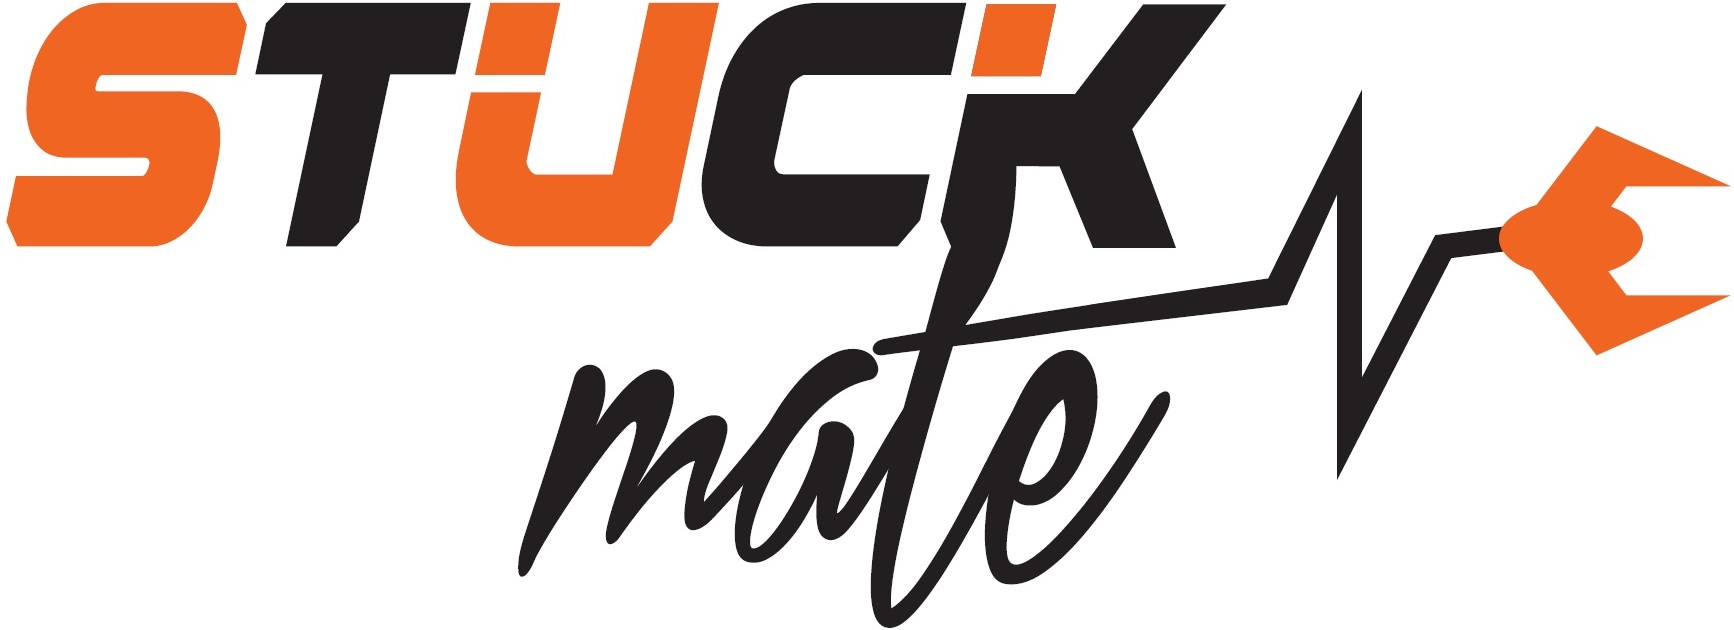 Logo Stuckmate Orange